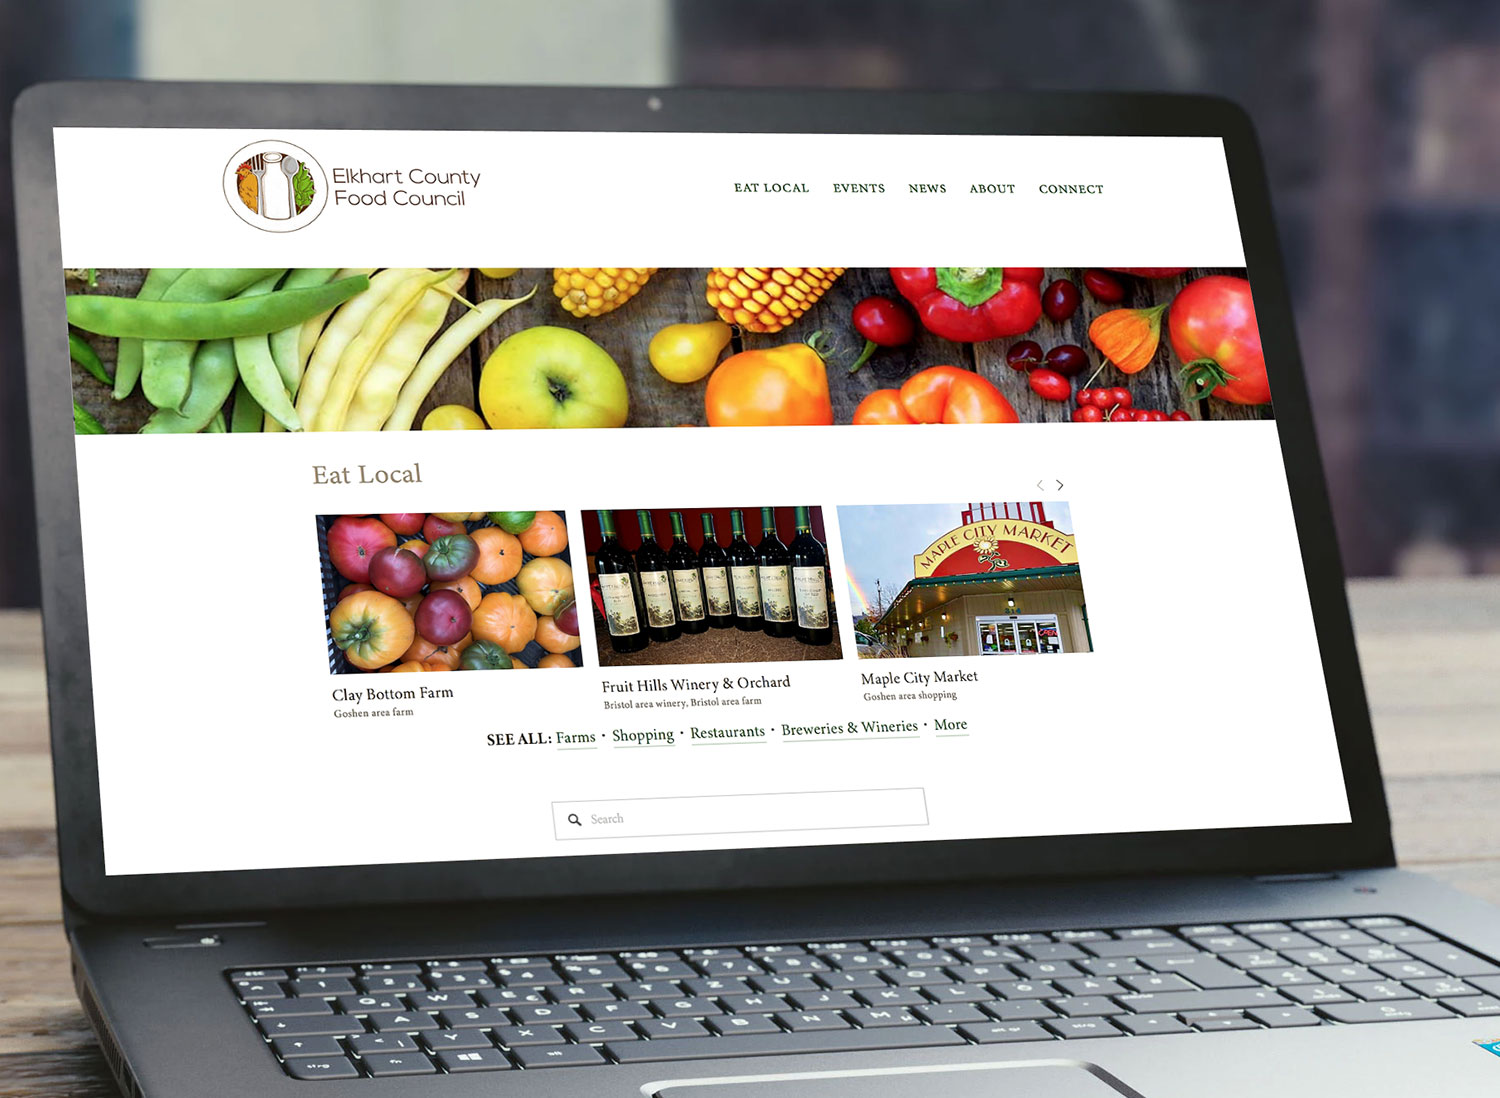 Elkhart County Food Council - Food Council WebsiteThis food council website includes a directory of local farms and other local food options, plus an event calendar, online donation area, and a blog.